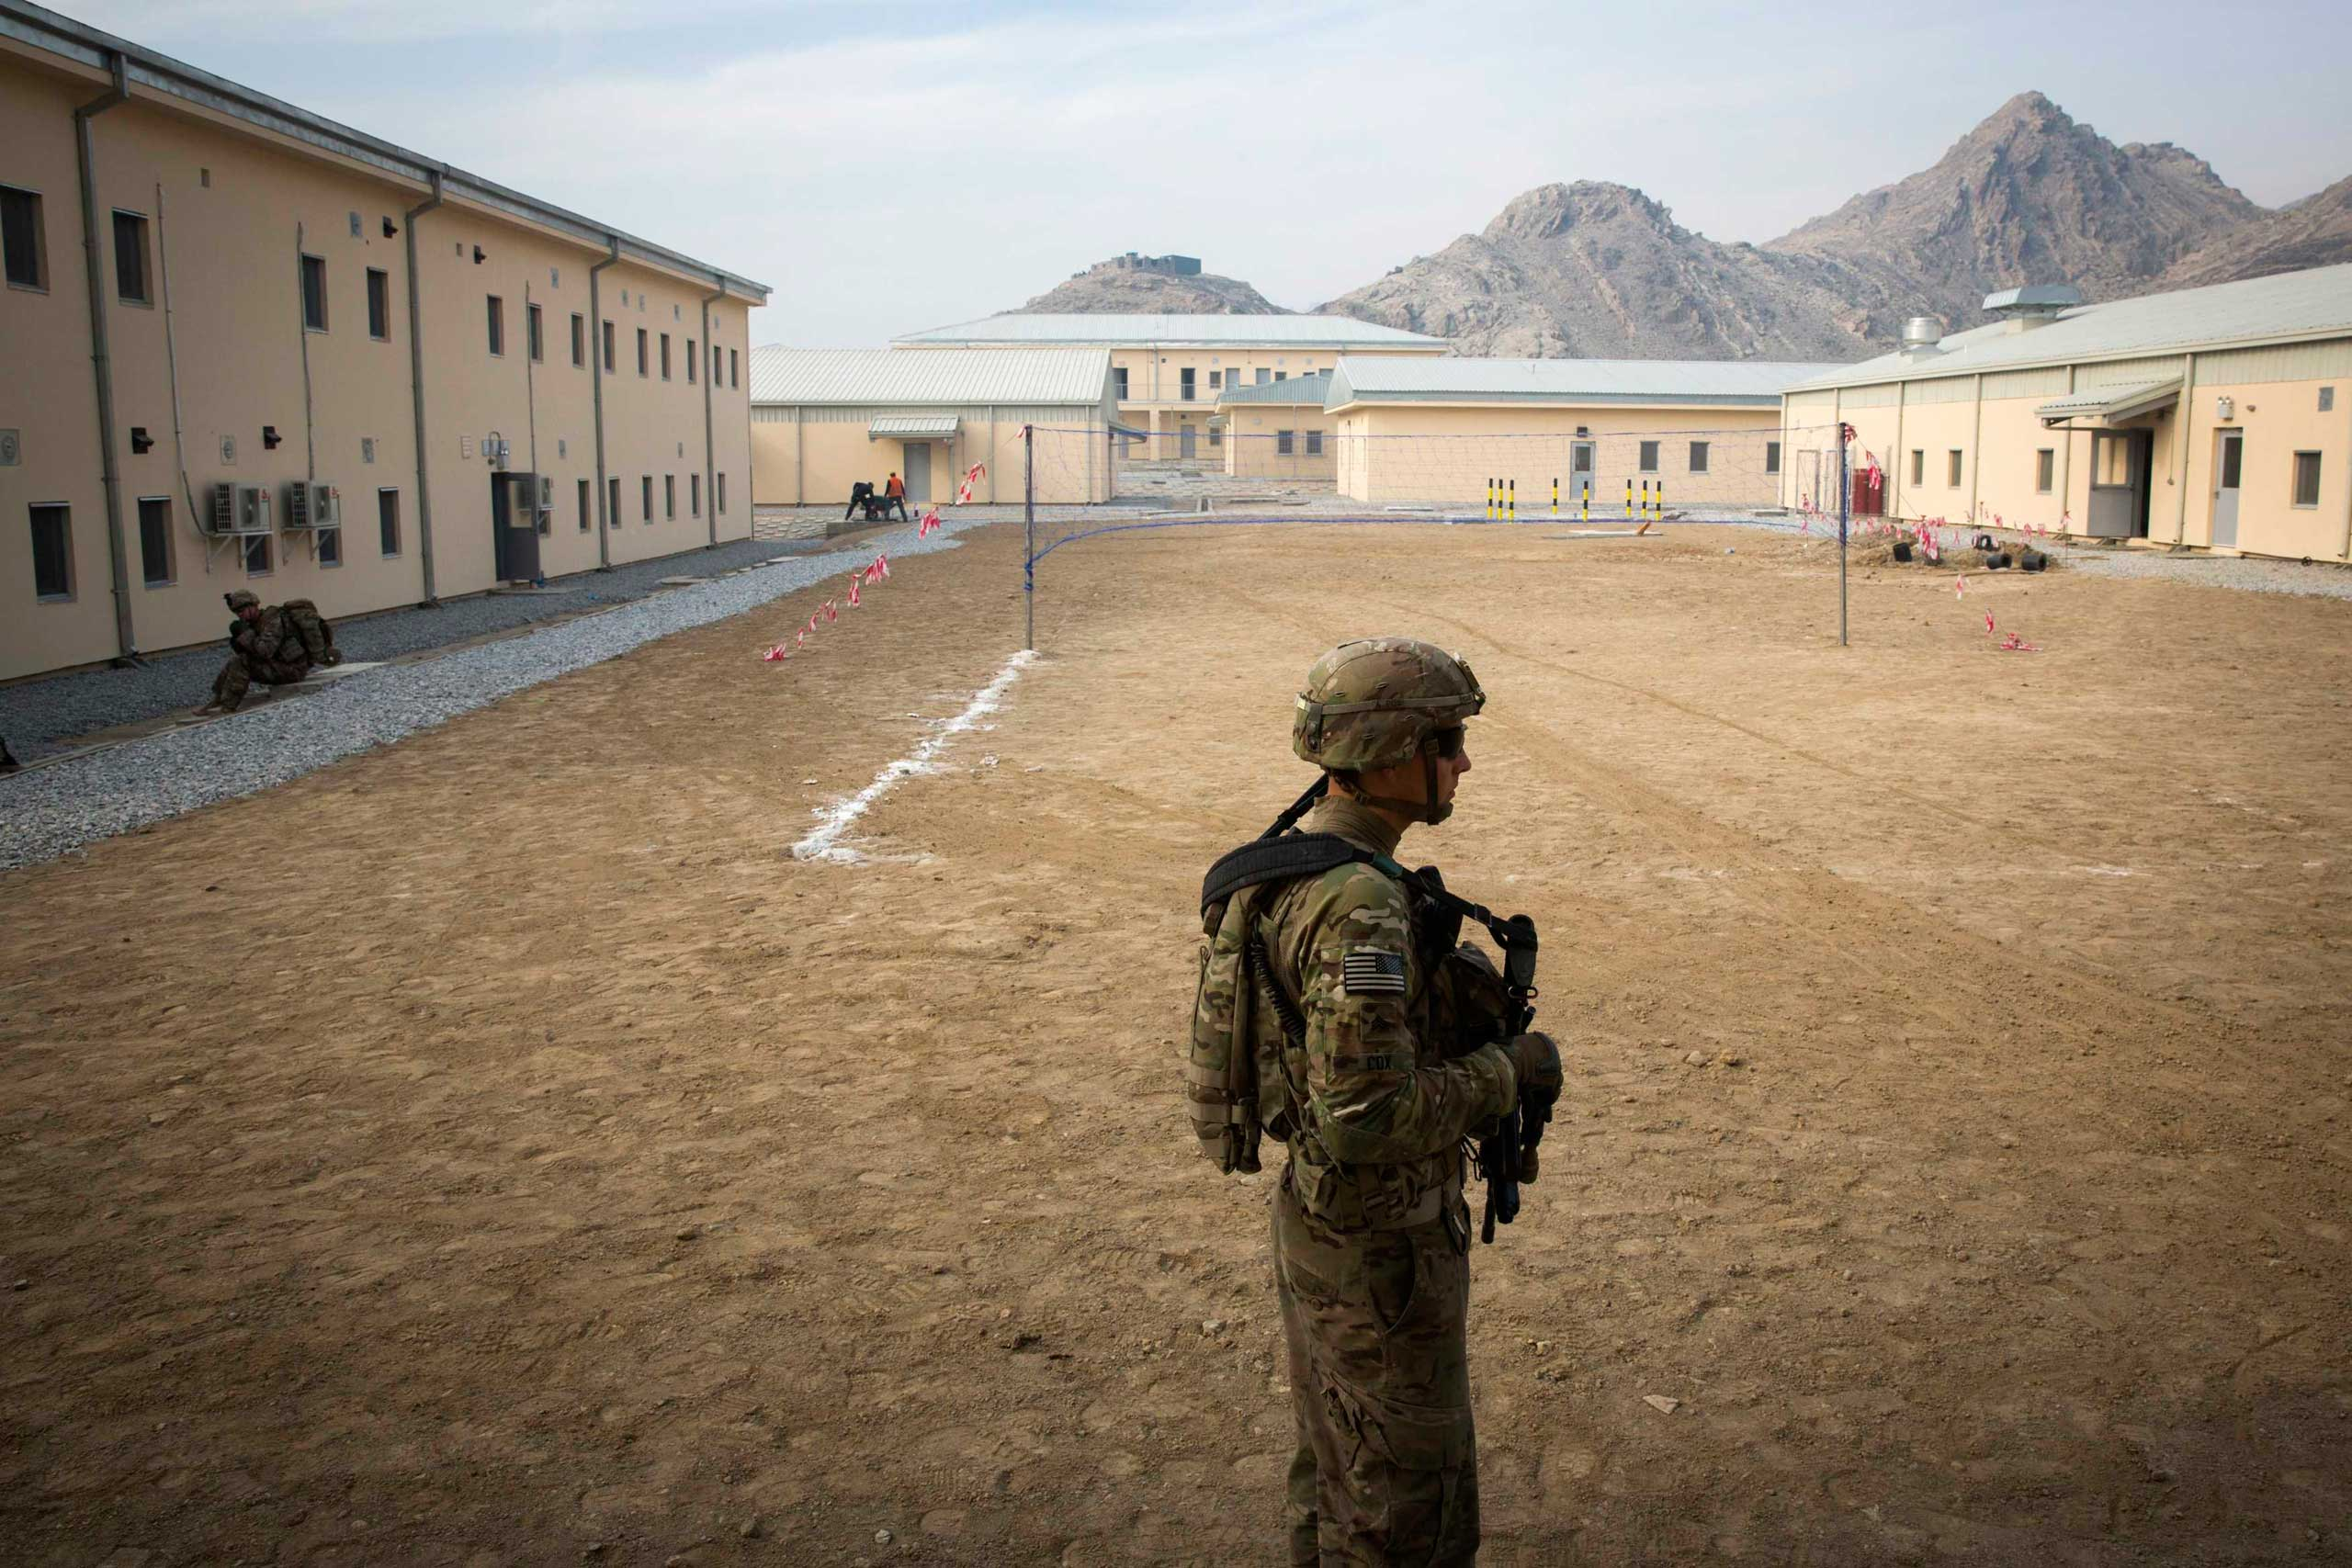 A U.S. soldier from the 3rd Cavalry Regiment walks through an Afghan police station near Jalalabad in the Nangarhar province of Afghanistan on Dec. 20, 2014.